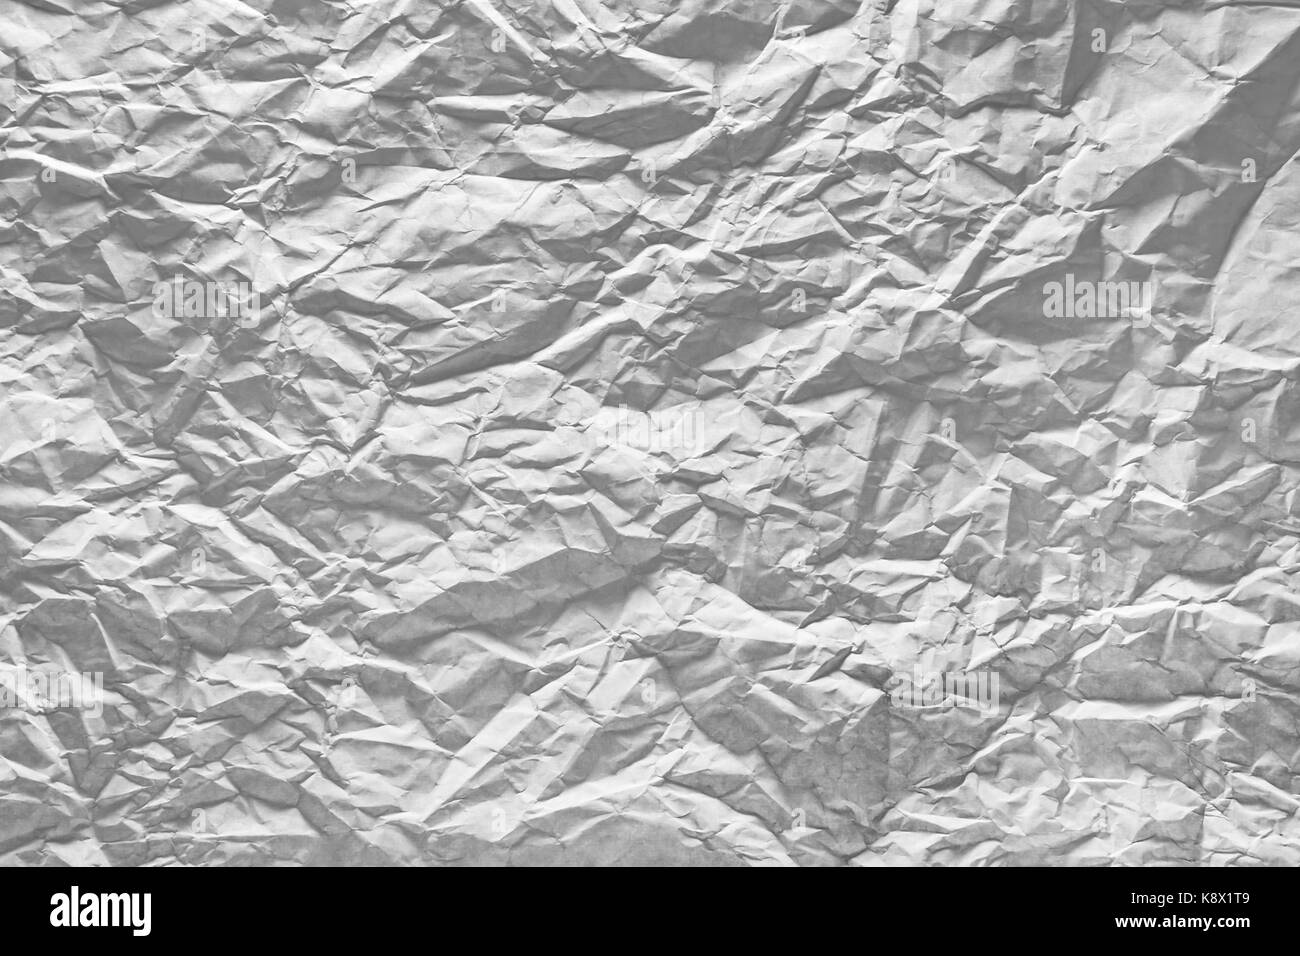 Surface of crumpled paper highlighted by light. Stressed, illuminated sheet of paper paper. - Stock Image